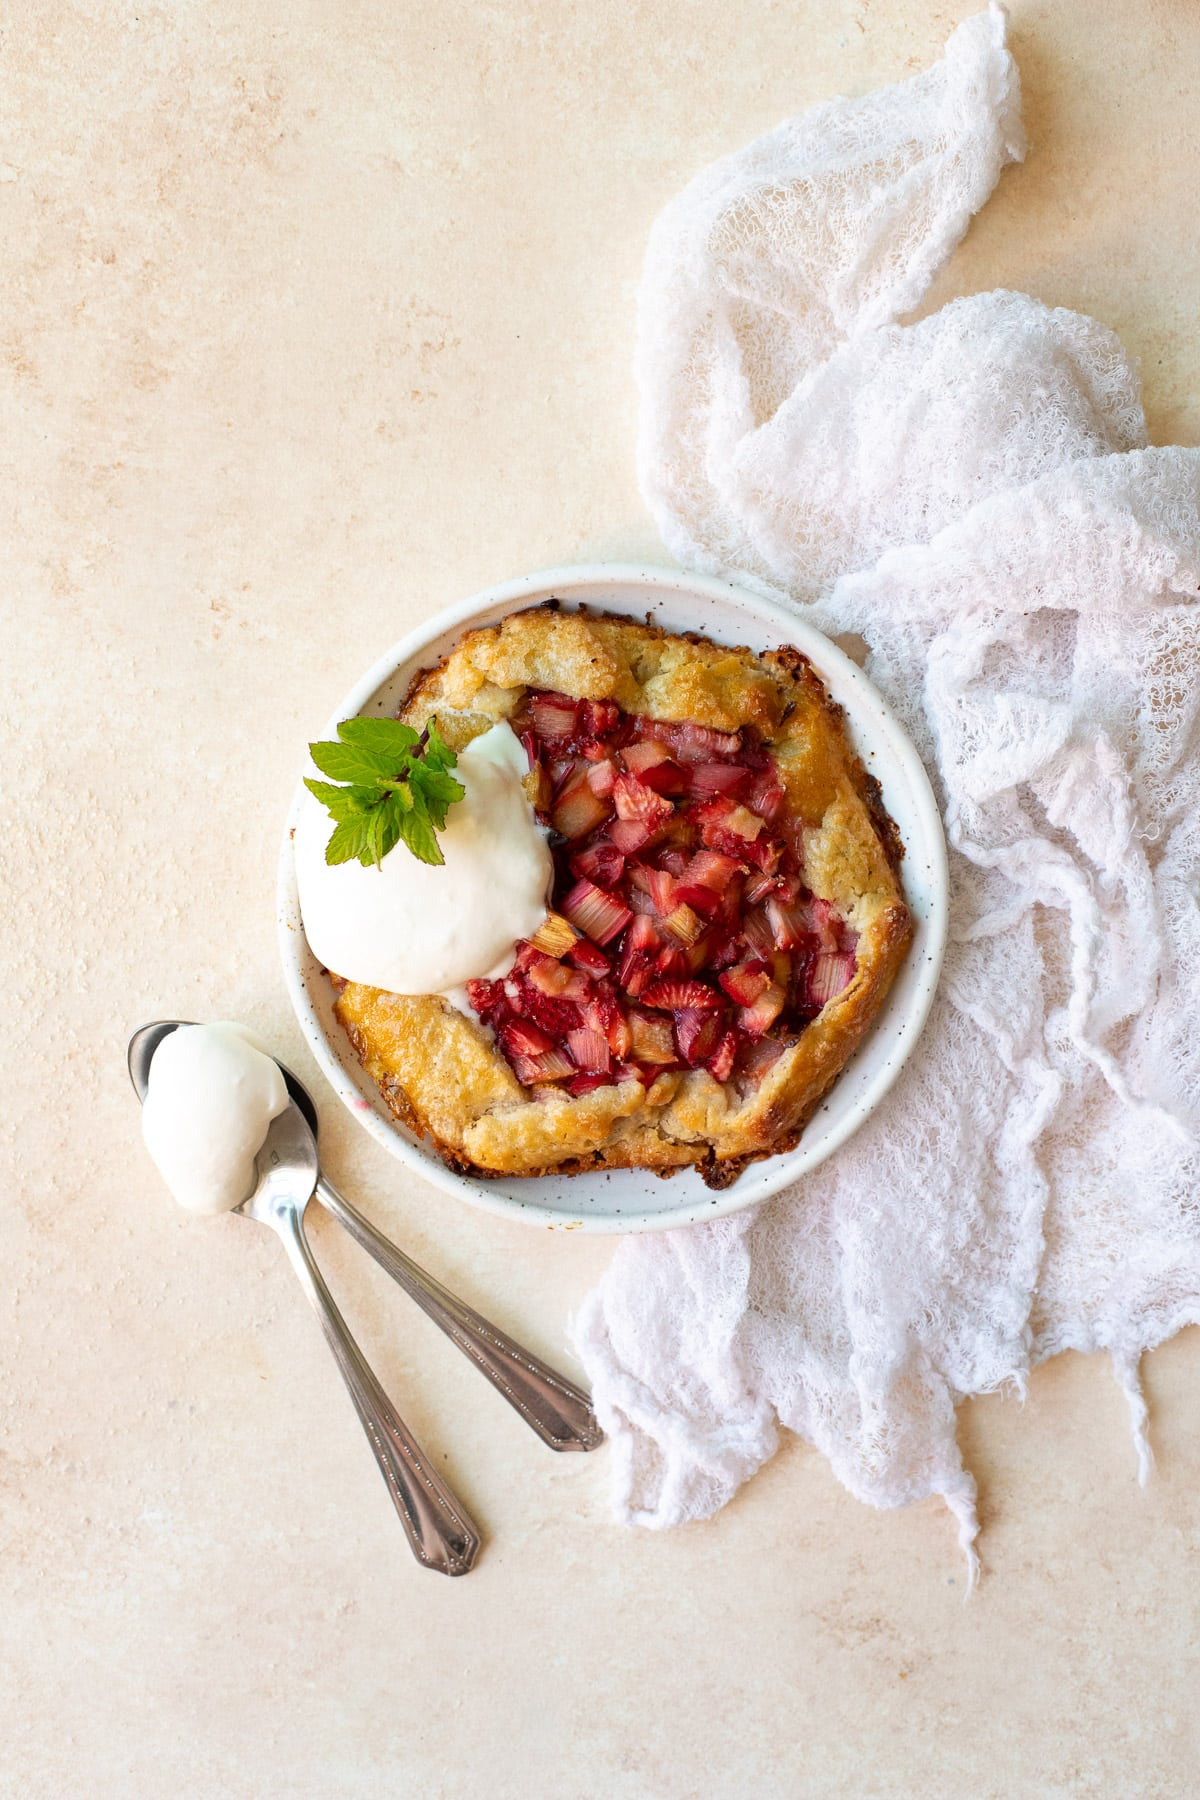 Overhead view of a single galette on a plate, topped with whipped cream and garnished with mint.